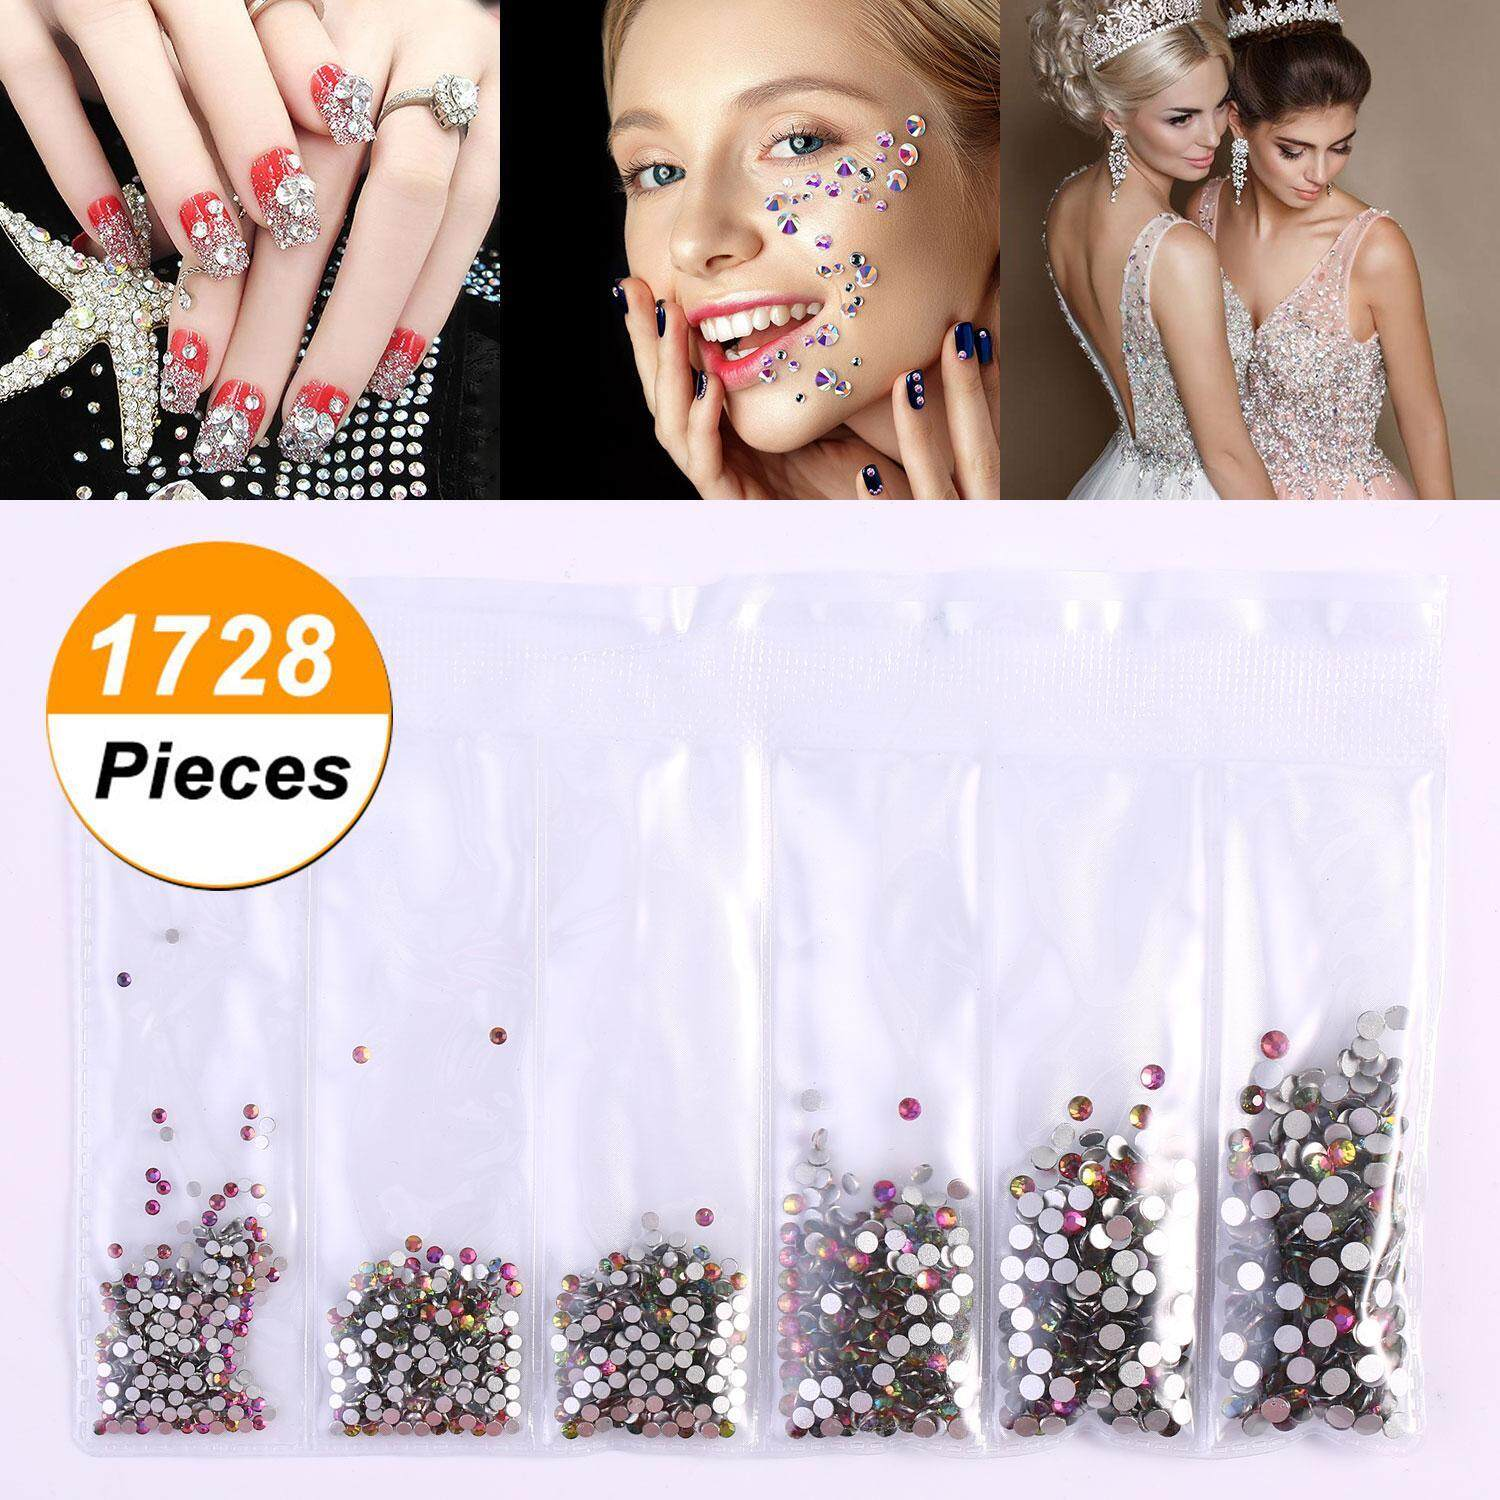 Nail Art brands - Nail Art Designs on sale, prices, set & reviews in ...